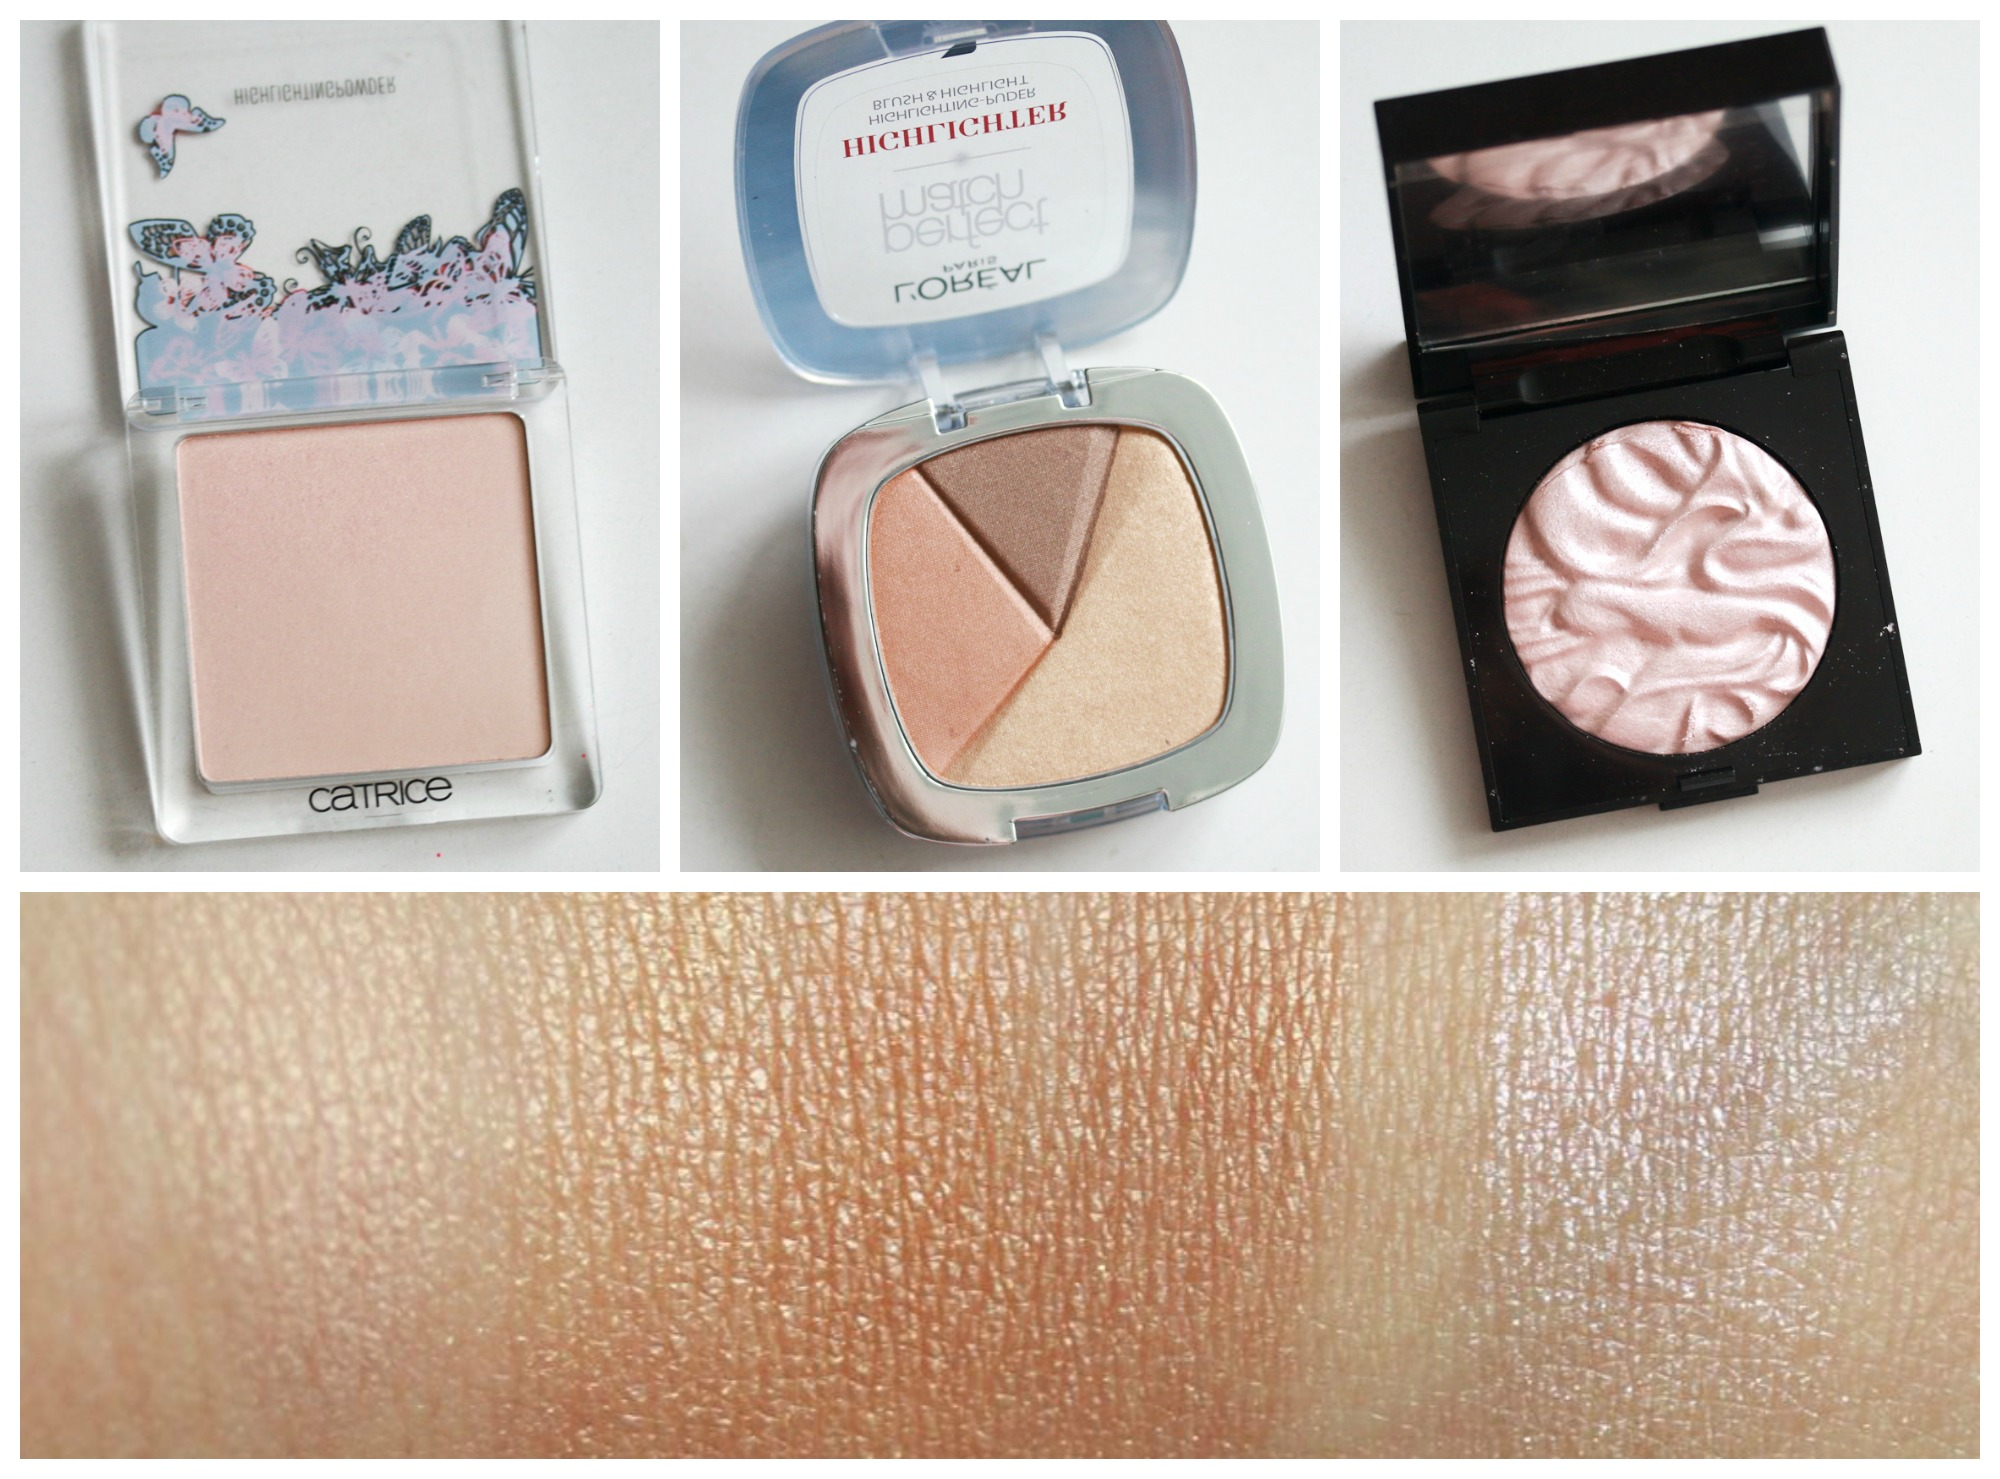 Catrice – Enter Wonderland LE Highlighting Powder – C01 Fairy Dust L'ORÉAL – perfect match Highlighting Powder – 102W Golden Glow laura mercier – Face Illuminator – Devotion